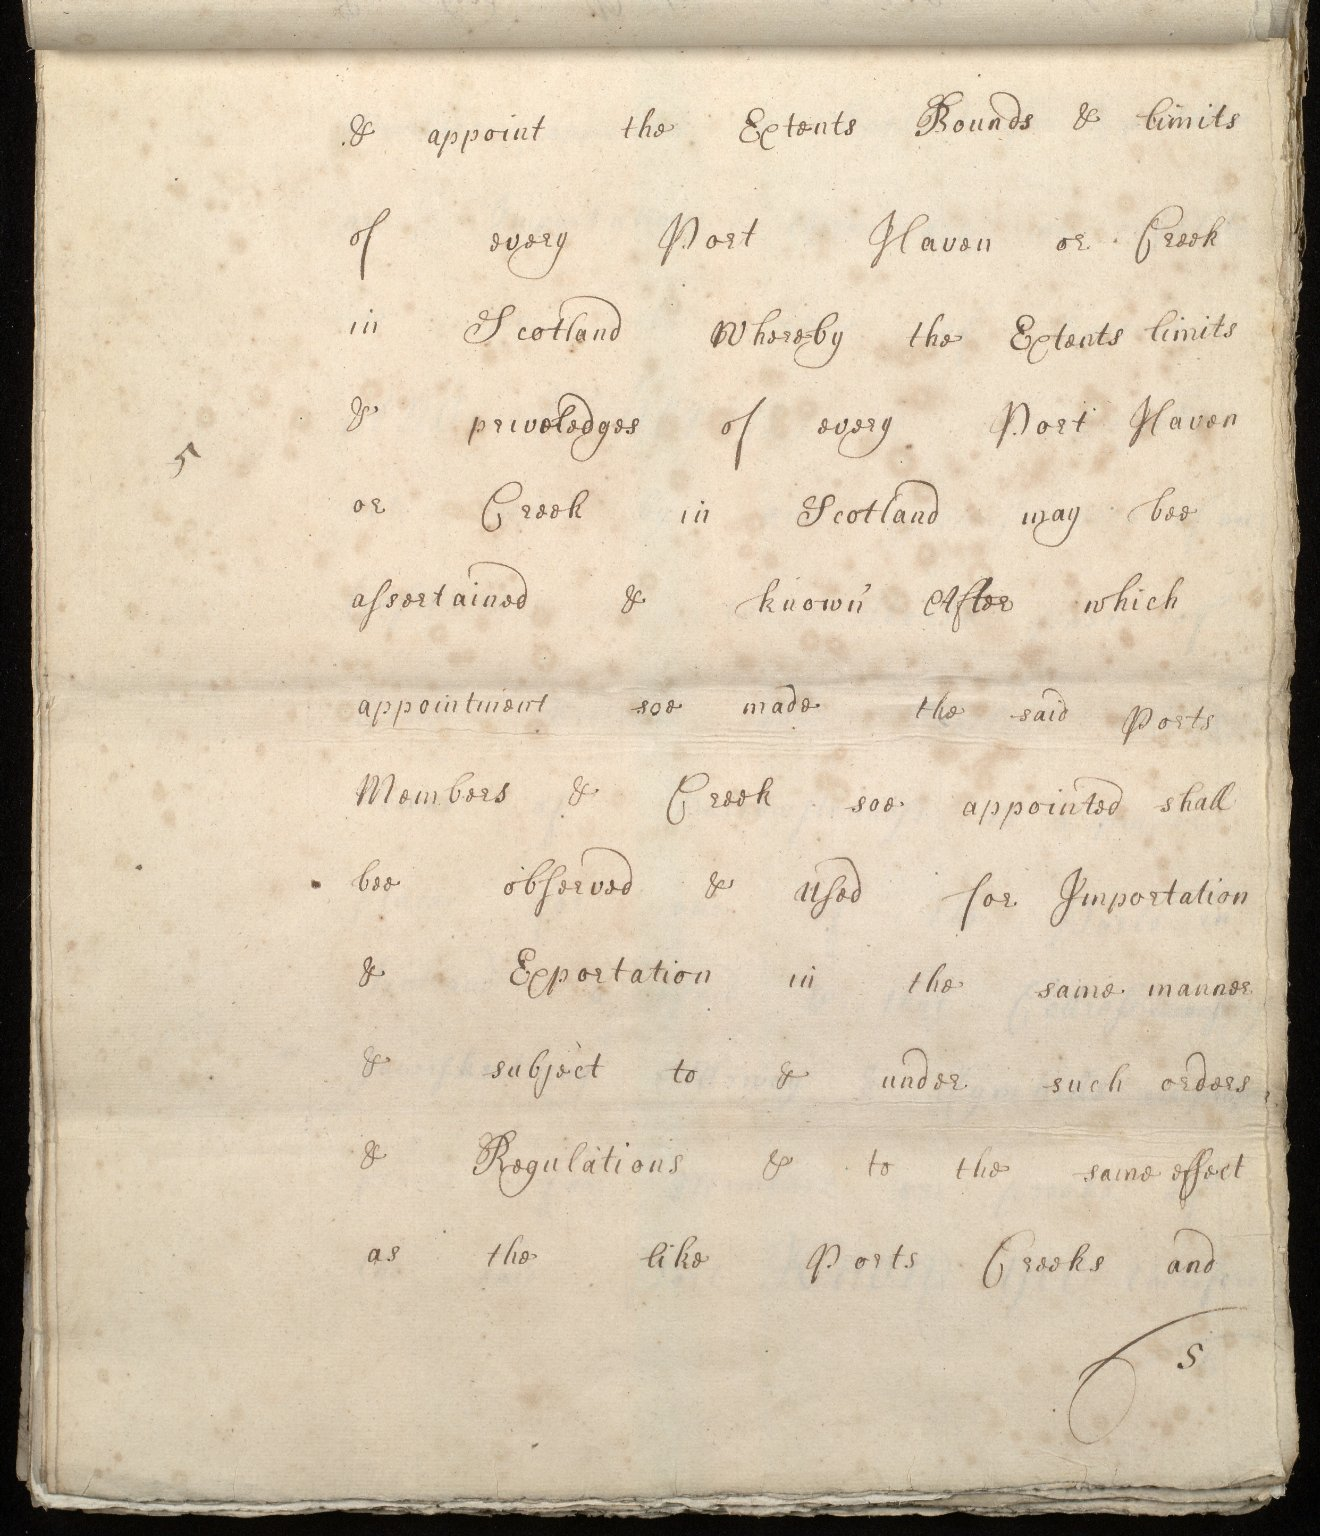 [Commission by Queen Anne to John Adair and others to appoint the town of Borrowstounness (Bo'ness) to be a port and to fix the bounds thereof] [05 of 39]